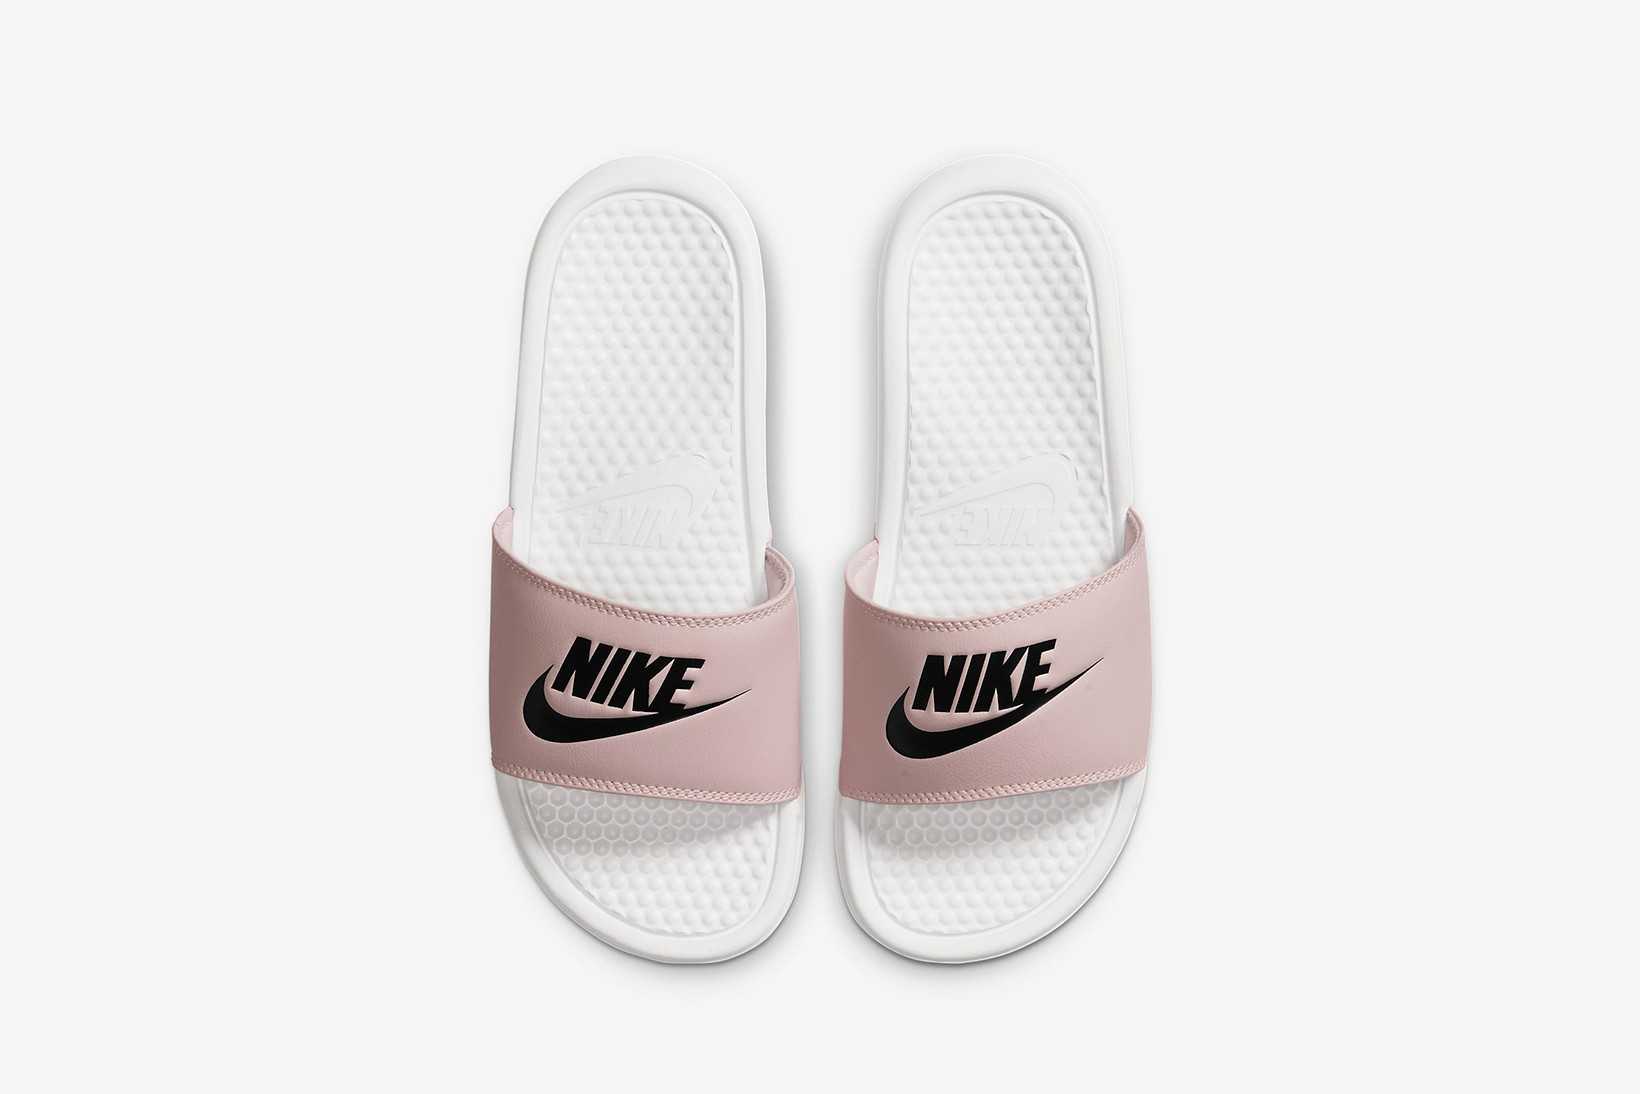 nike slippers for women pink